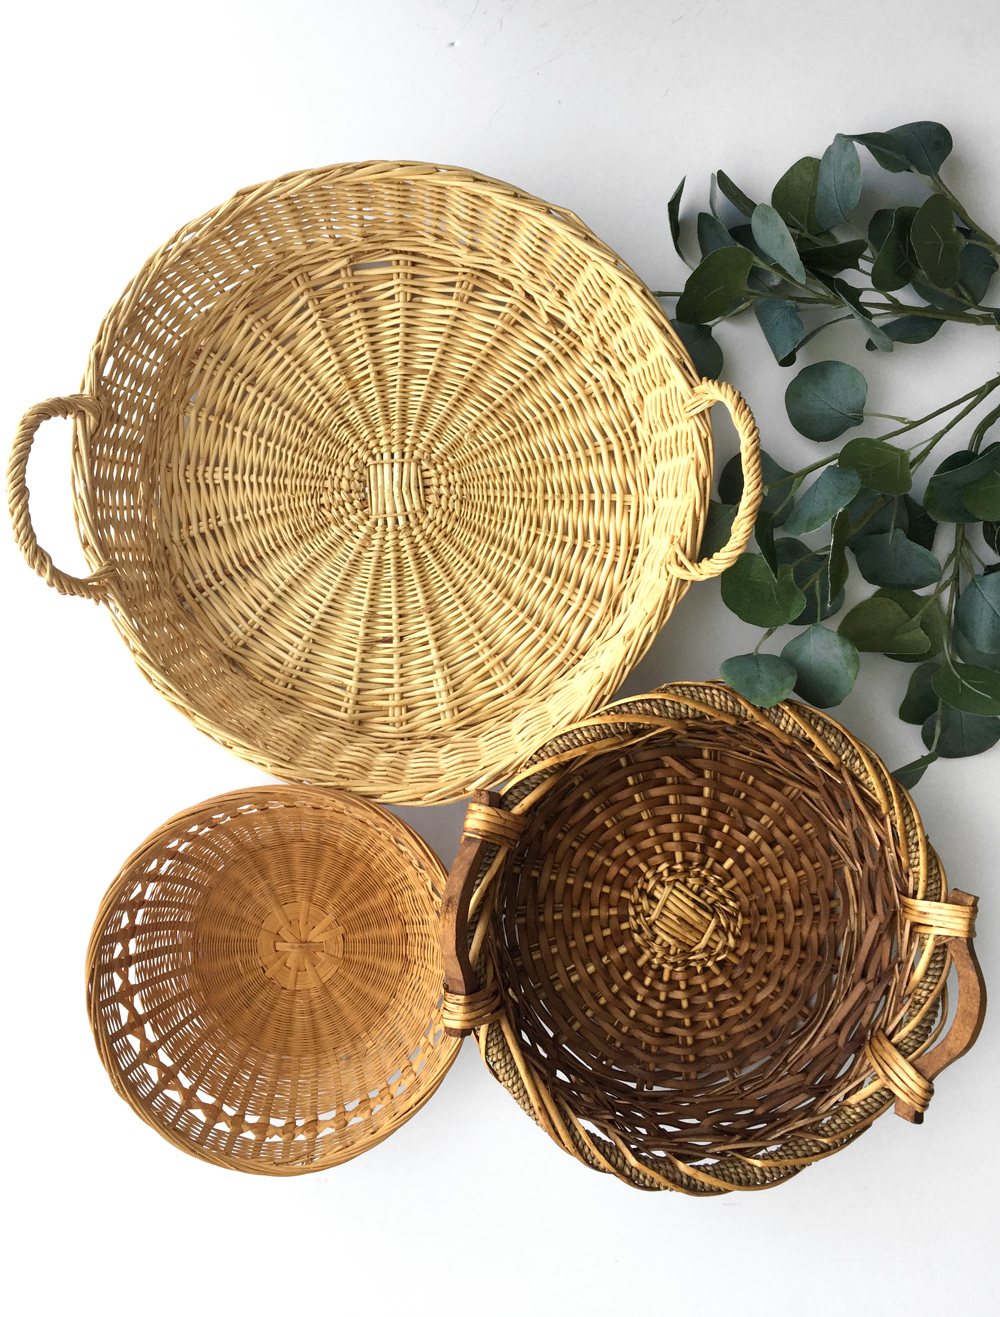 "Group of decorative natural baskets in various sizes. Large measures 16.5"" wide and 5.5"" deep (including handles). Dark basket measures 13"" wide (including handles) and 4.5"" deep. Small basket is 9.5"" wide and 3.5"" deep."